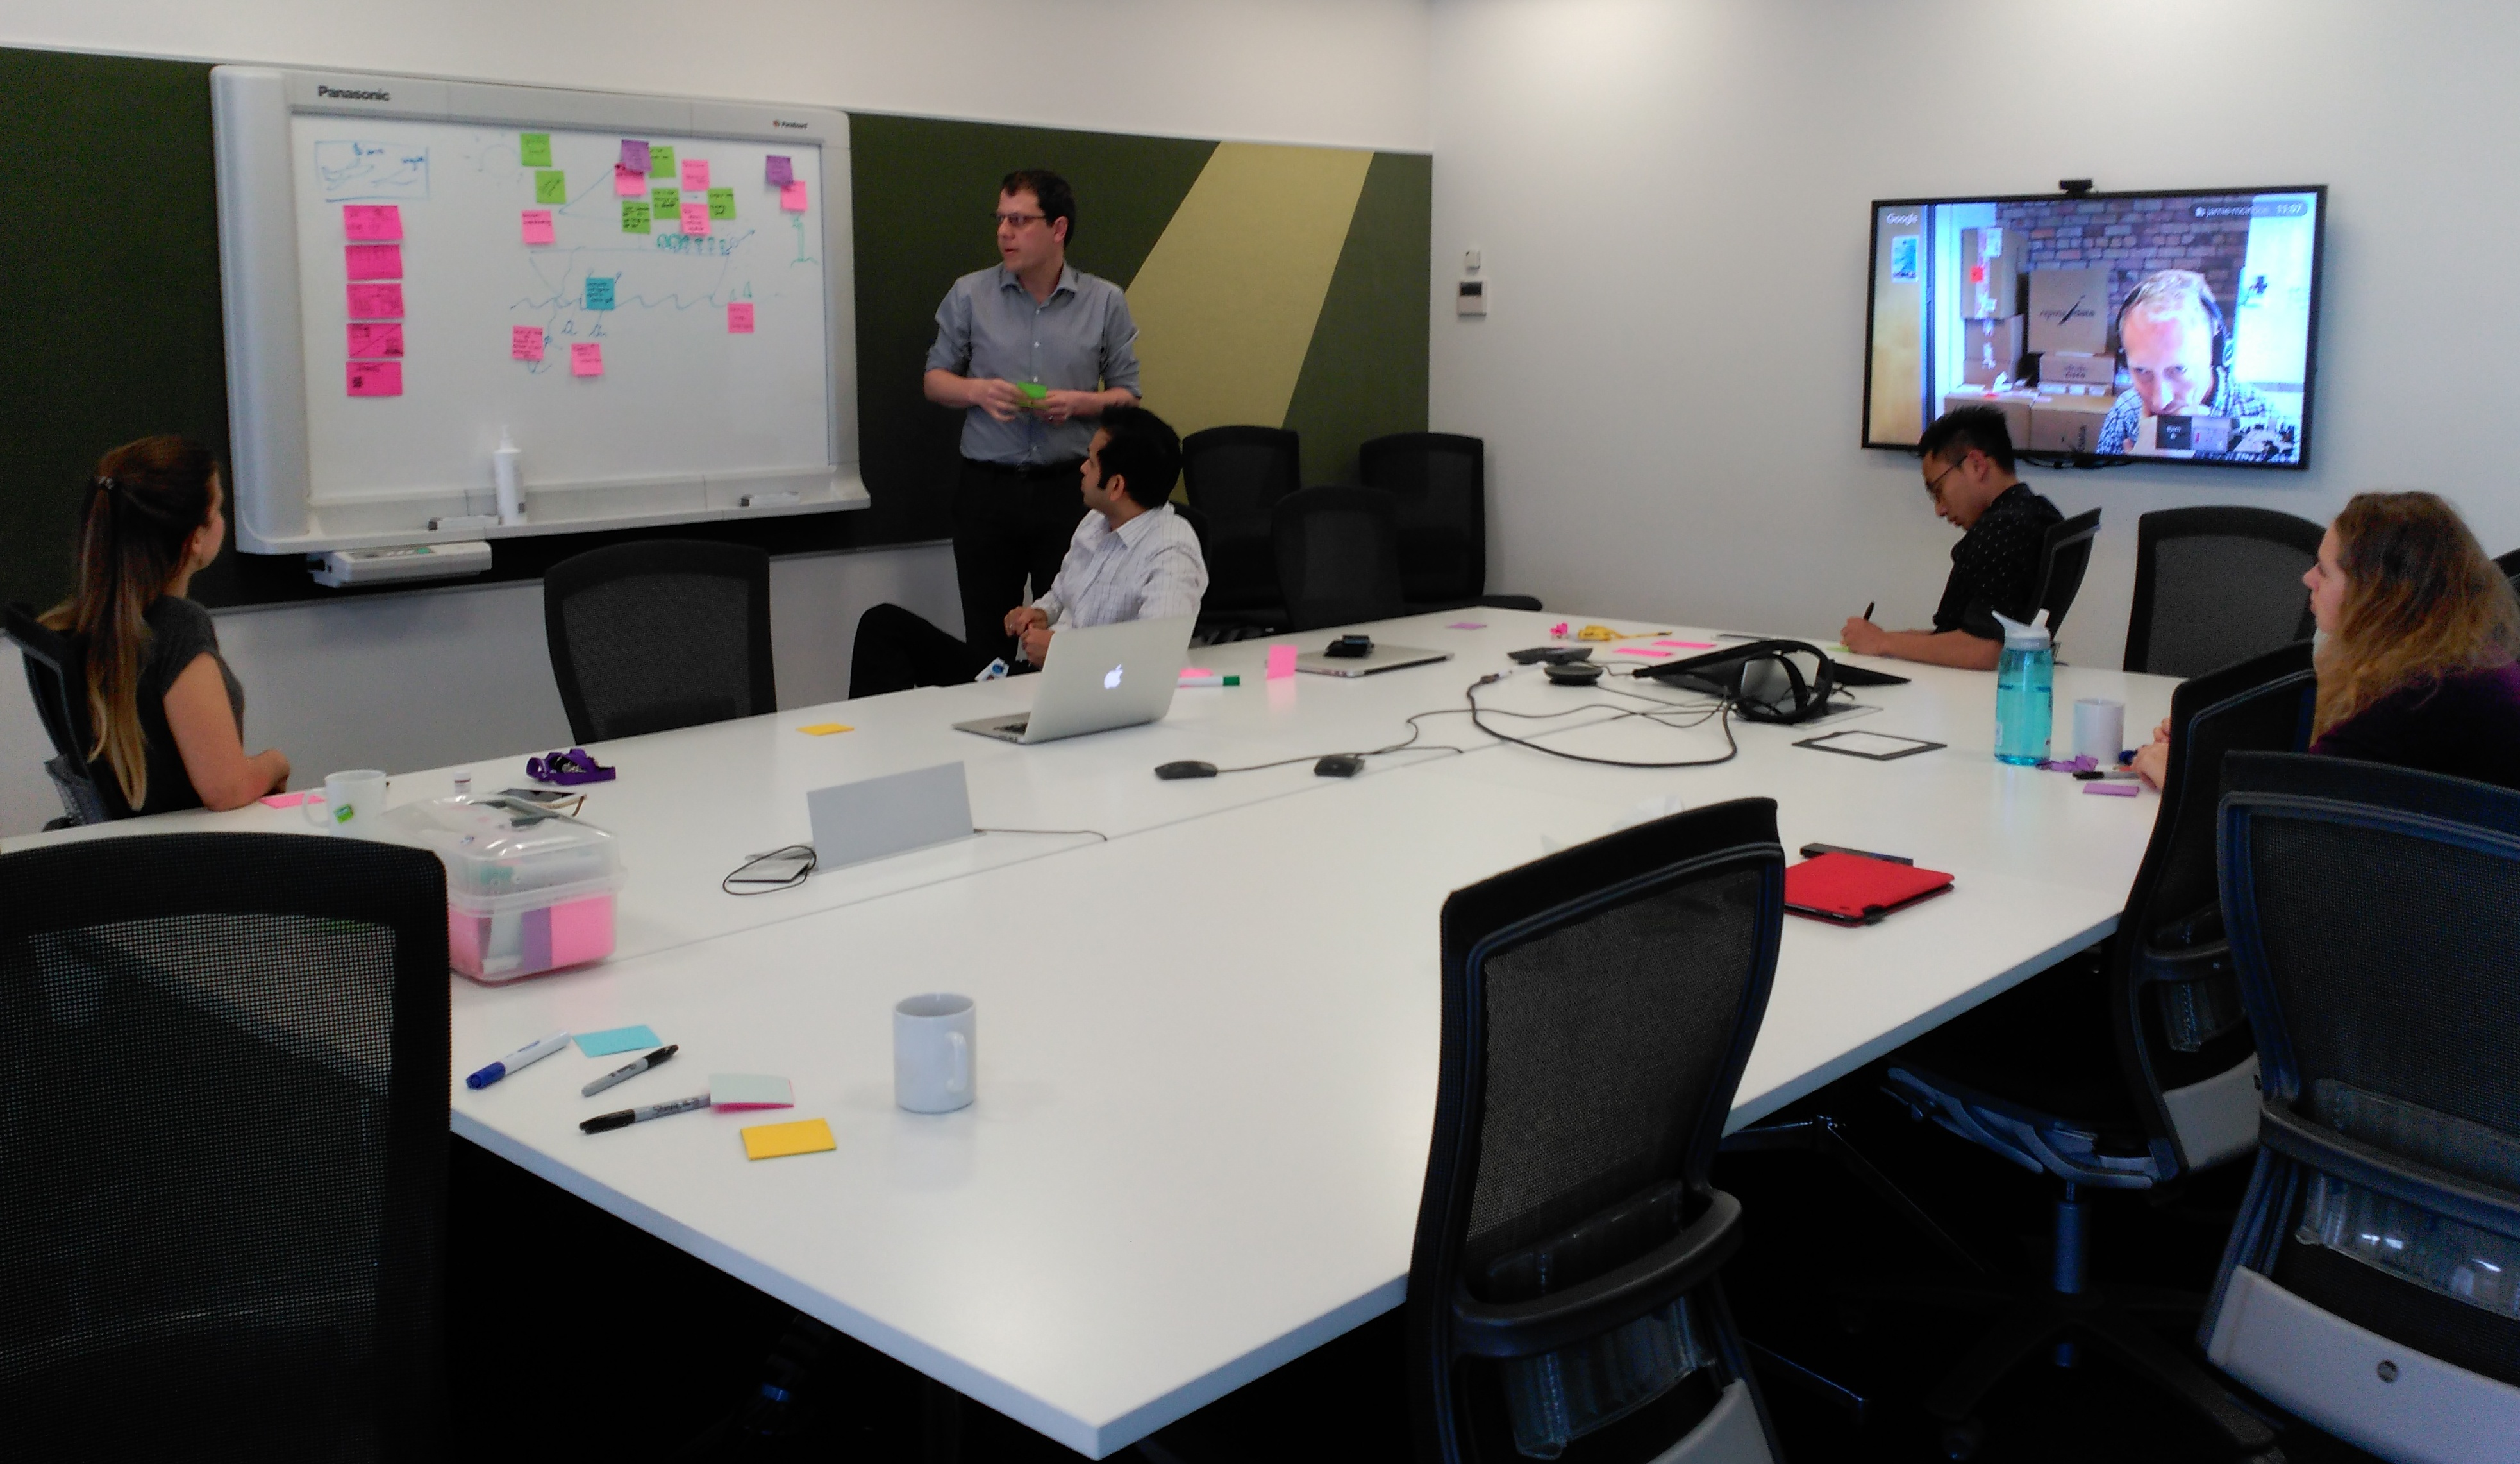 The Stuff Testers retro-ing. (L-R) Daphne, Jamie (standing), Rupesh, Ardian, Bjorn (via Hangout) and Yuliya